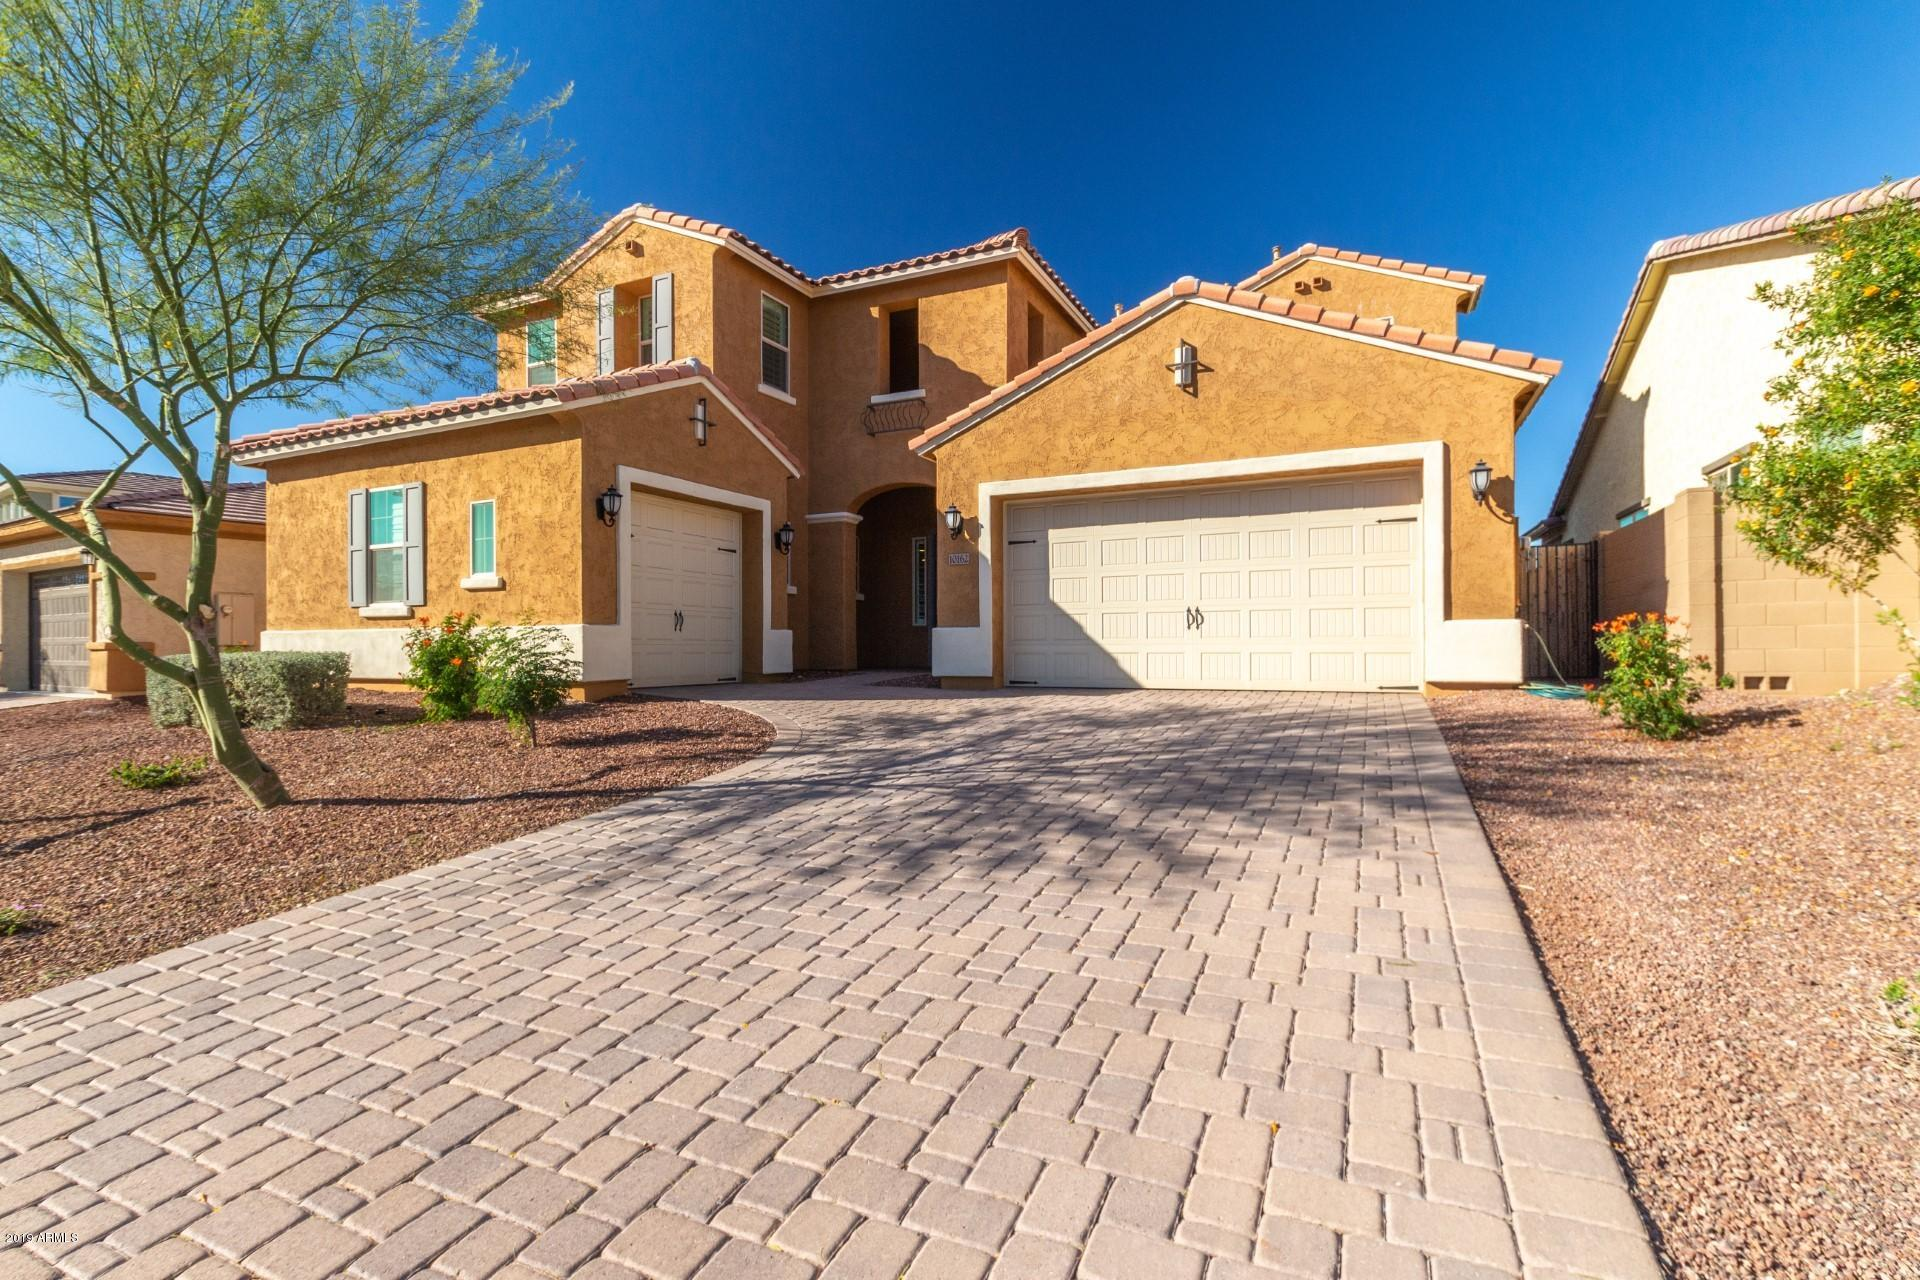 10162 W WHITE FEATHER Lane, Peoria, Arizona